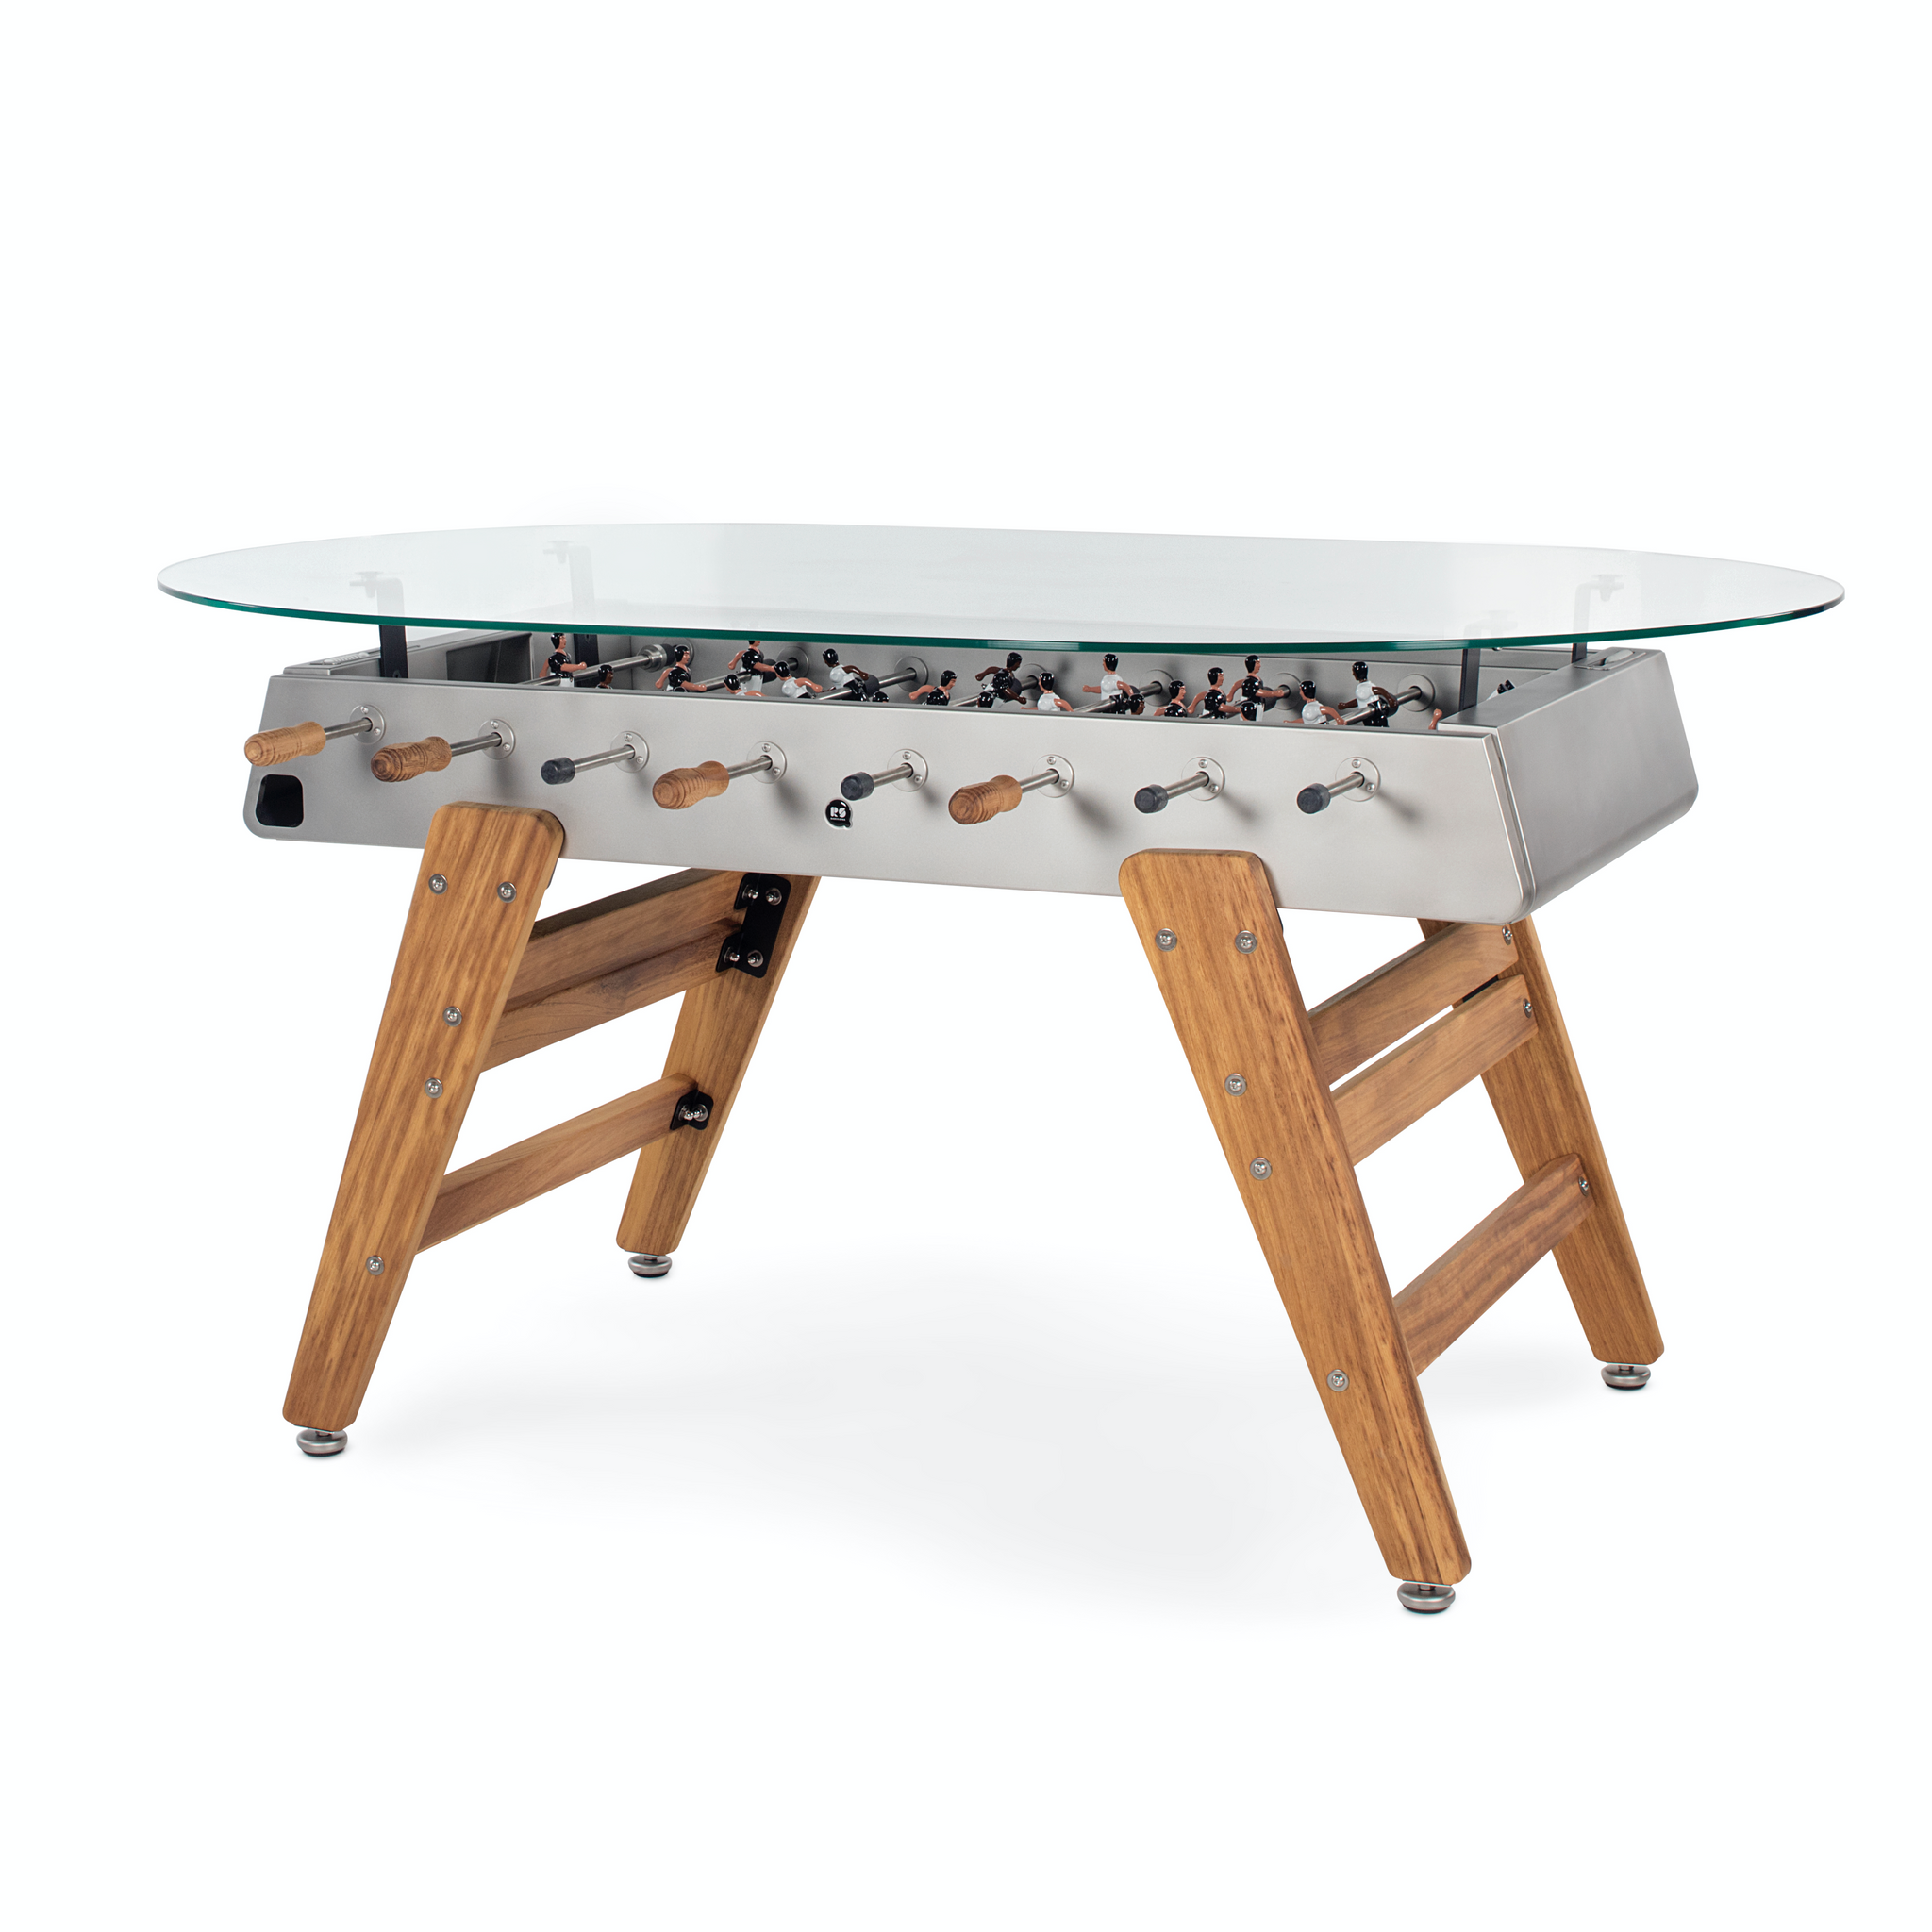 RS3 Wood Dining Oval Foosball Table in Stainless Steel